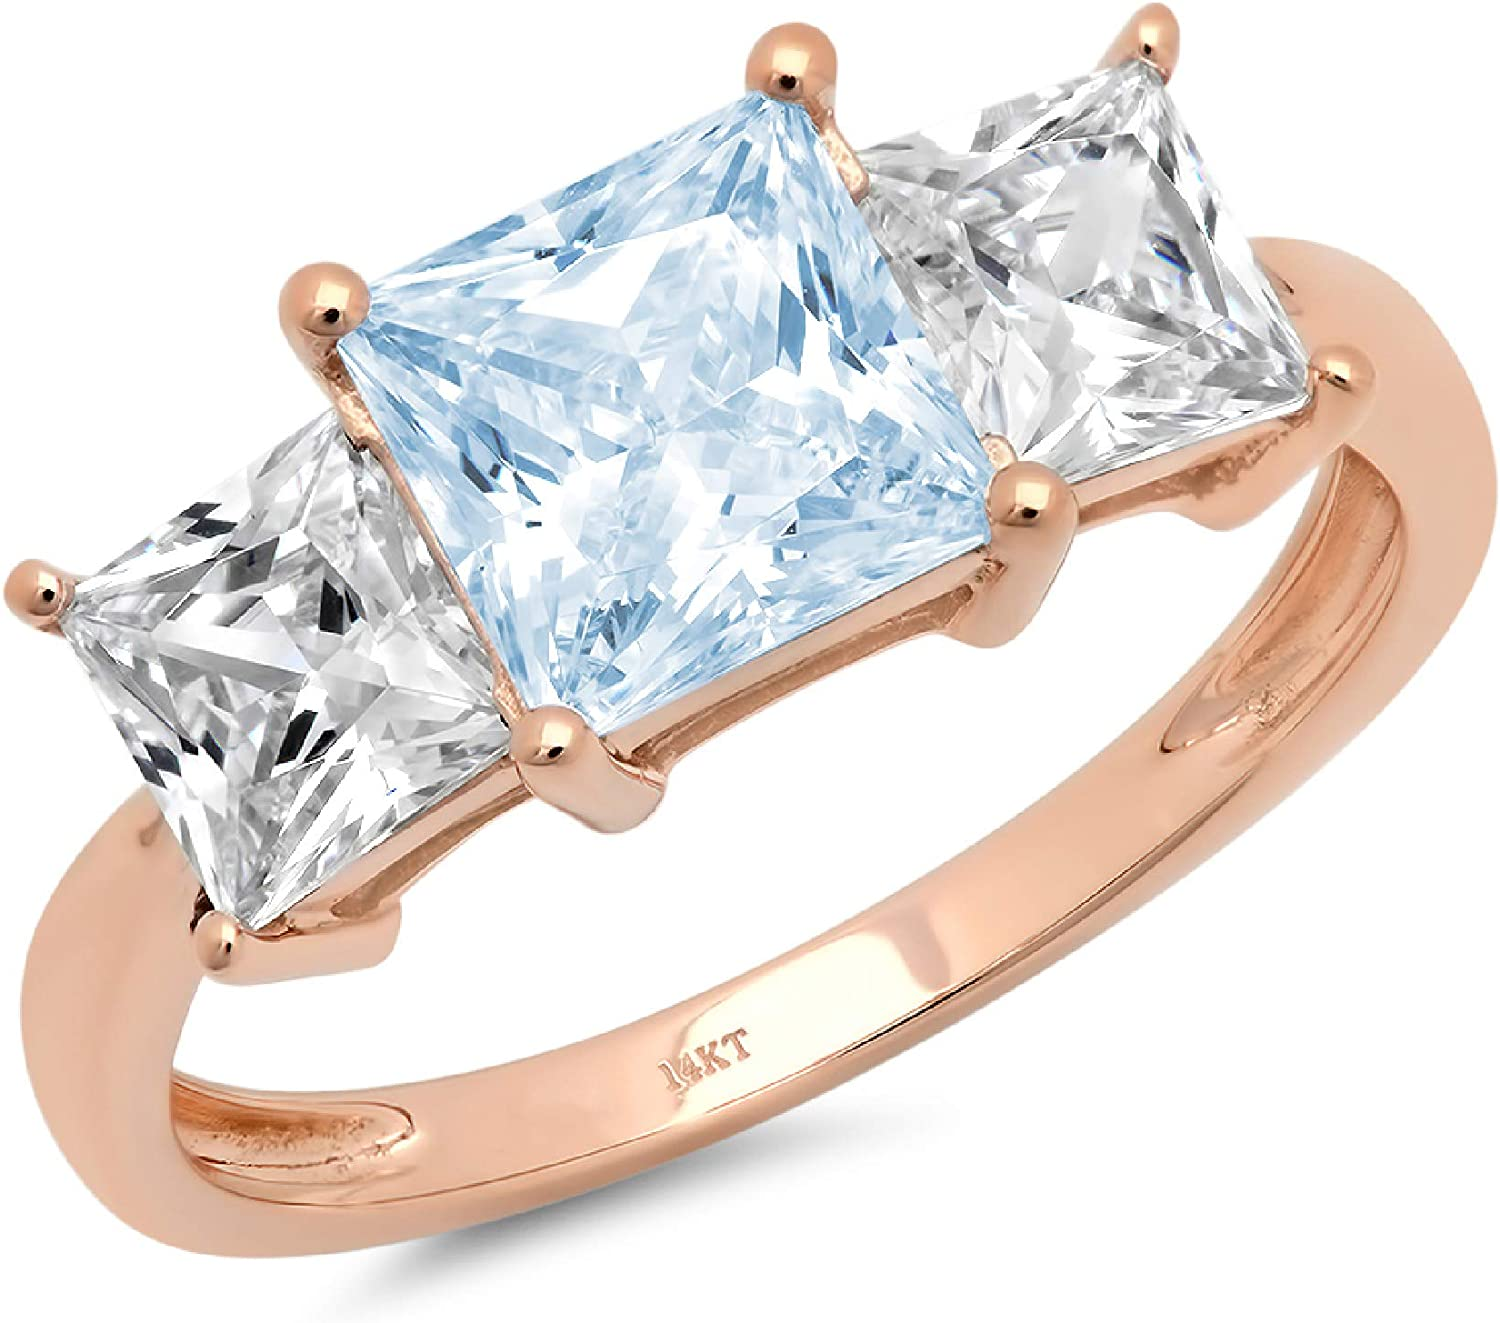 2.94ct Brilliant Princess Cut 3 Stone Solitaire with Accent Natural Sky Blue Topaz Gem Stone Ideal VVS1 Engagement Promise Statement Anniversary Bridal Wedding ring 14k Pink Rose Gold